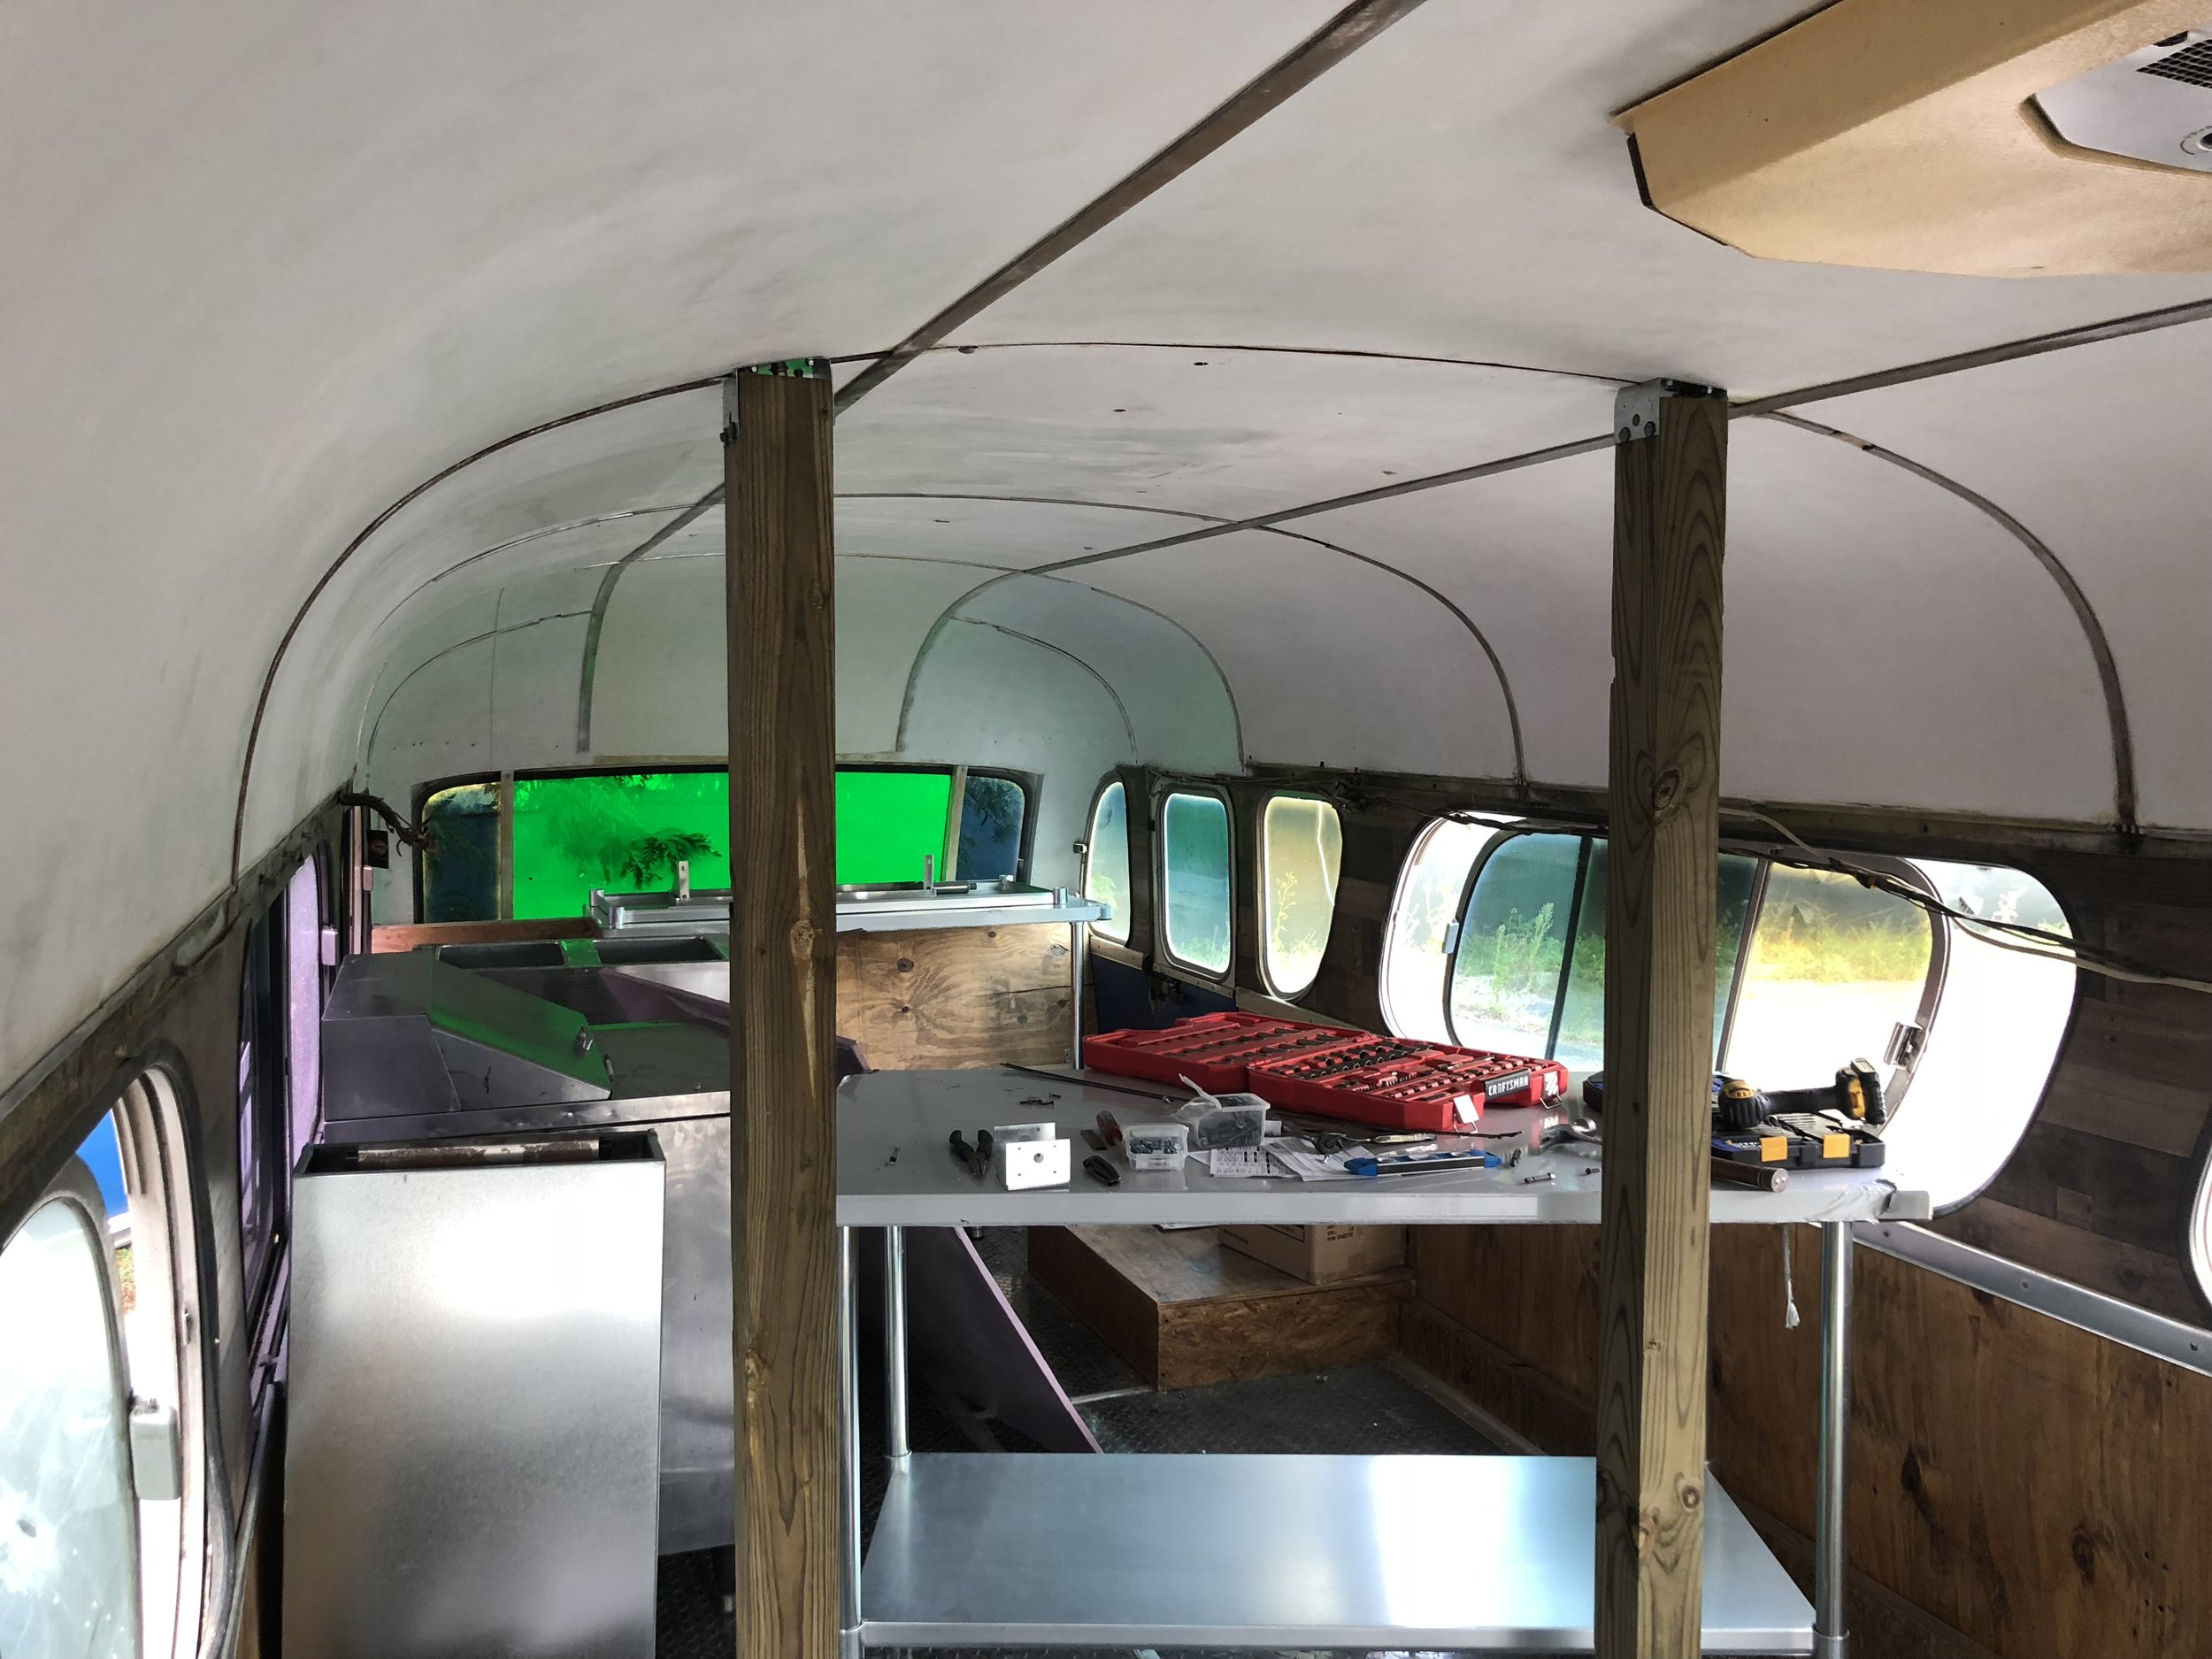 support posts in the center of the bus for the griddle and hood system